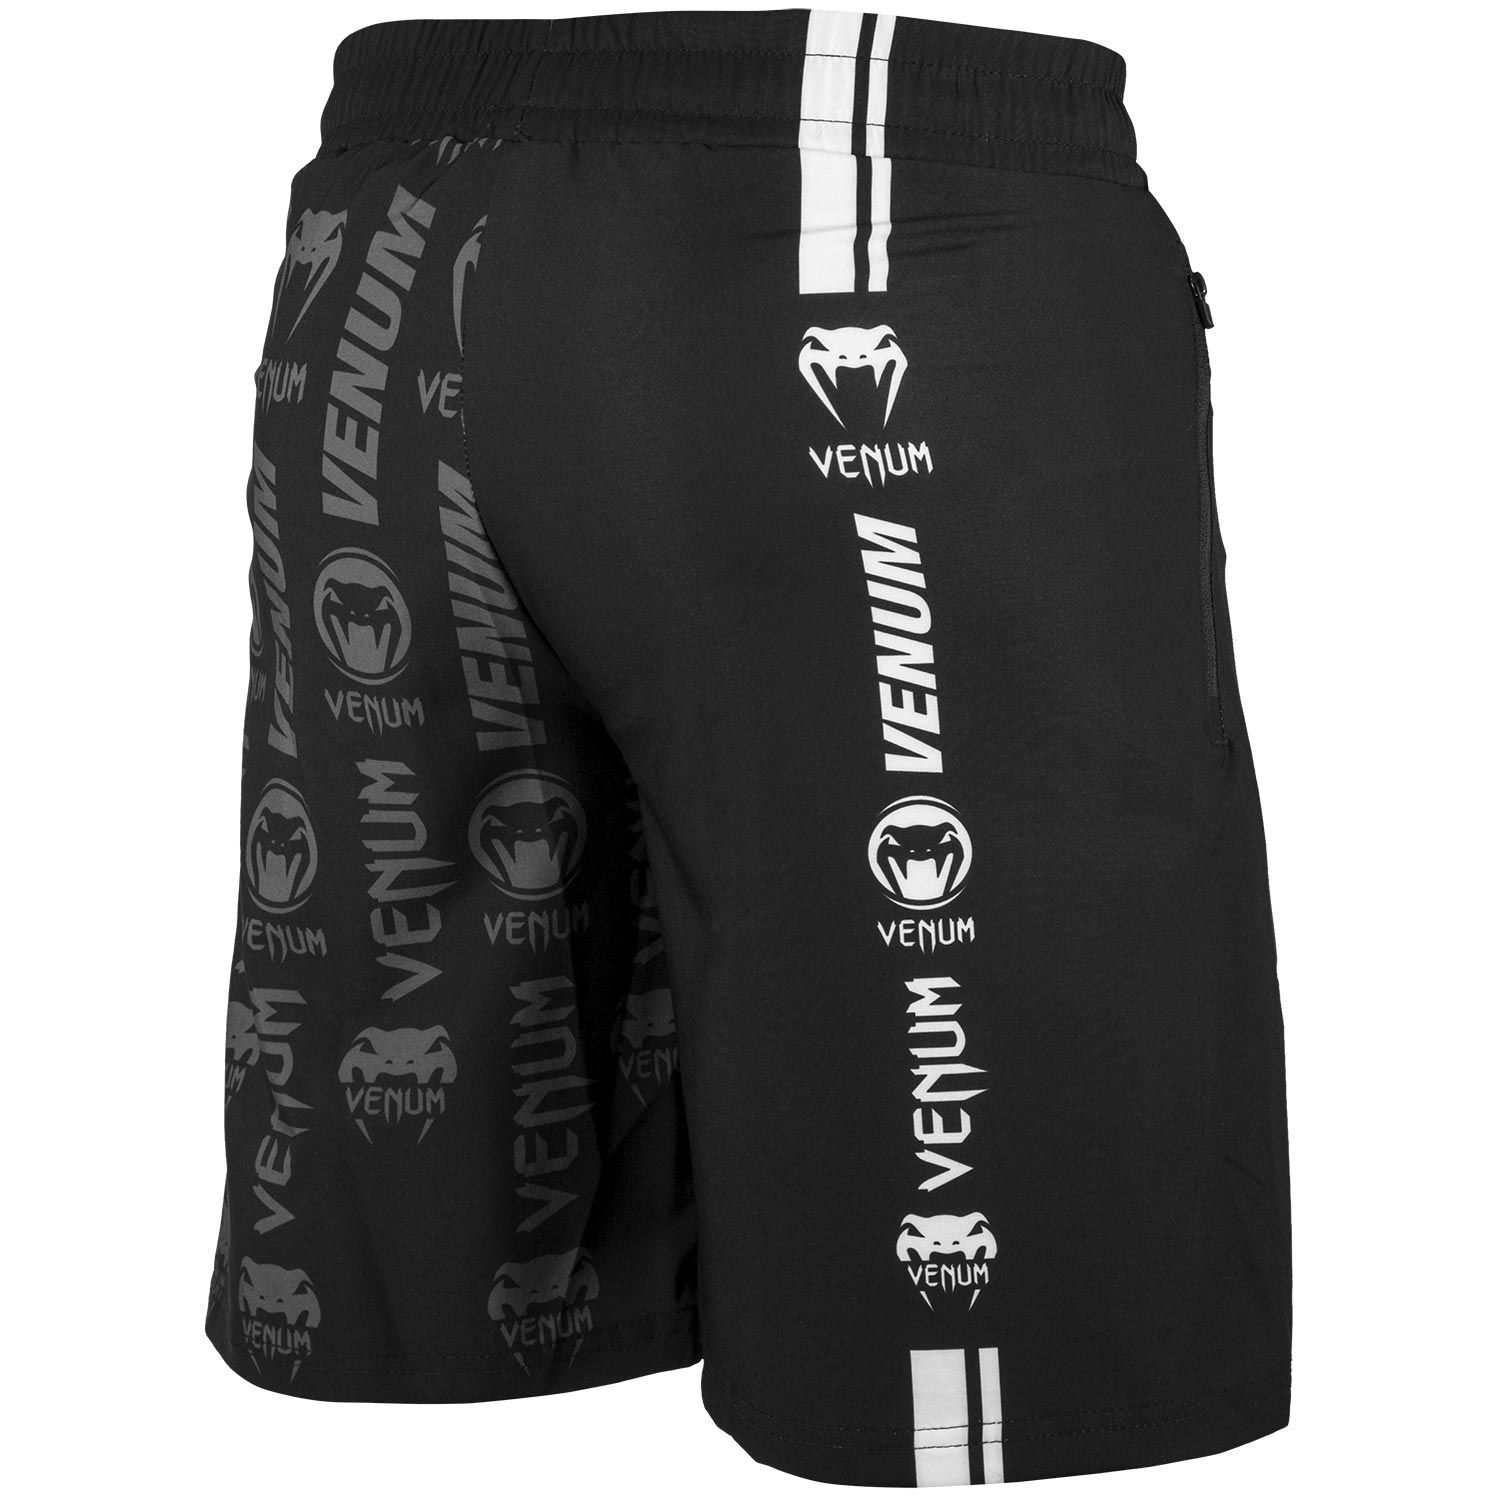 Шорты Venum Logos Training Shorts Black/White фото 4